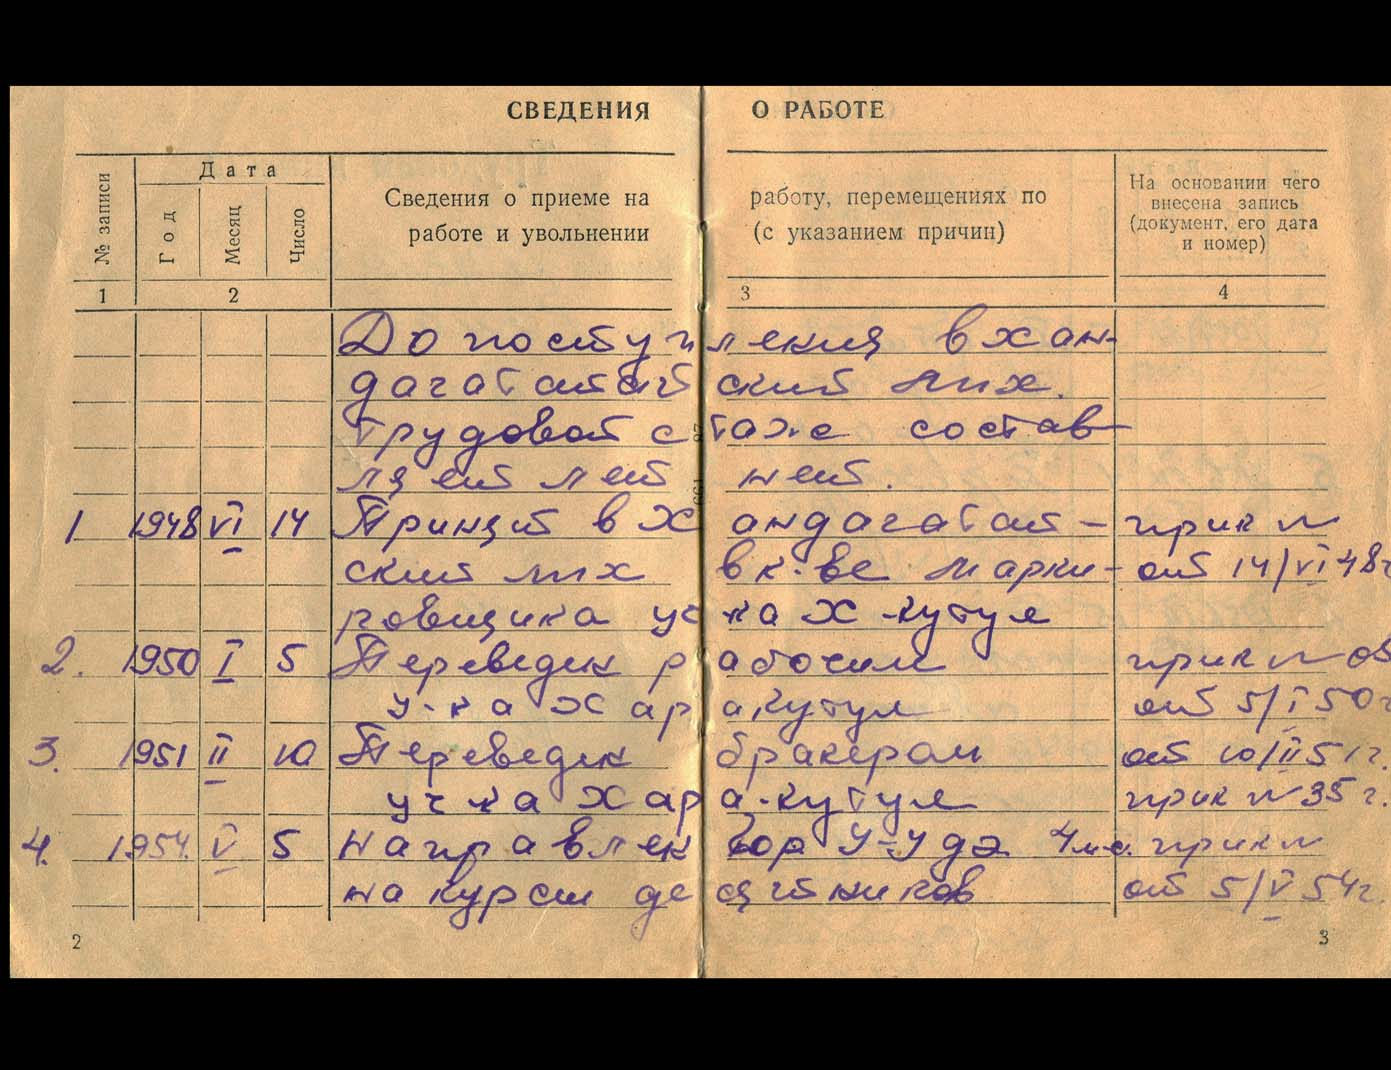 Employment record book, showing that he started work at the age of 11 in 1948